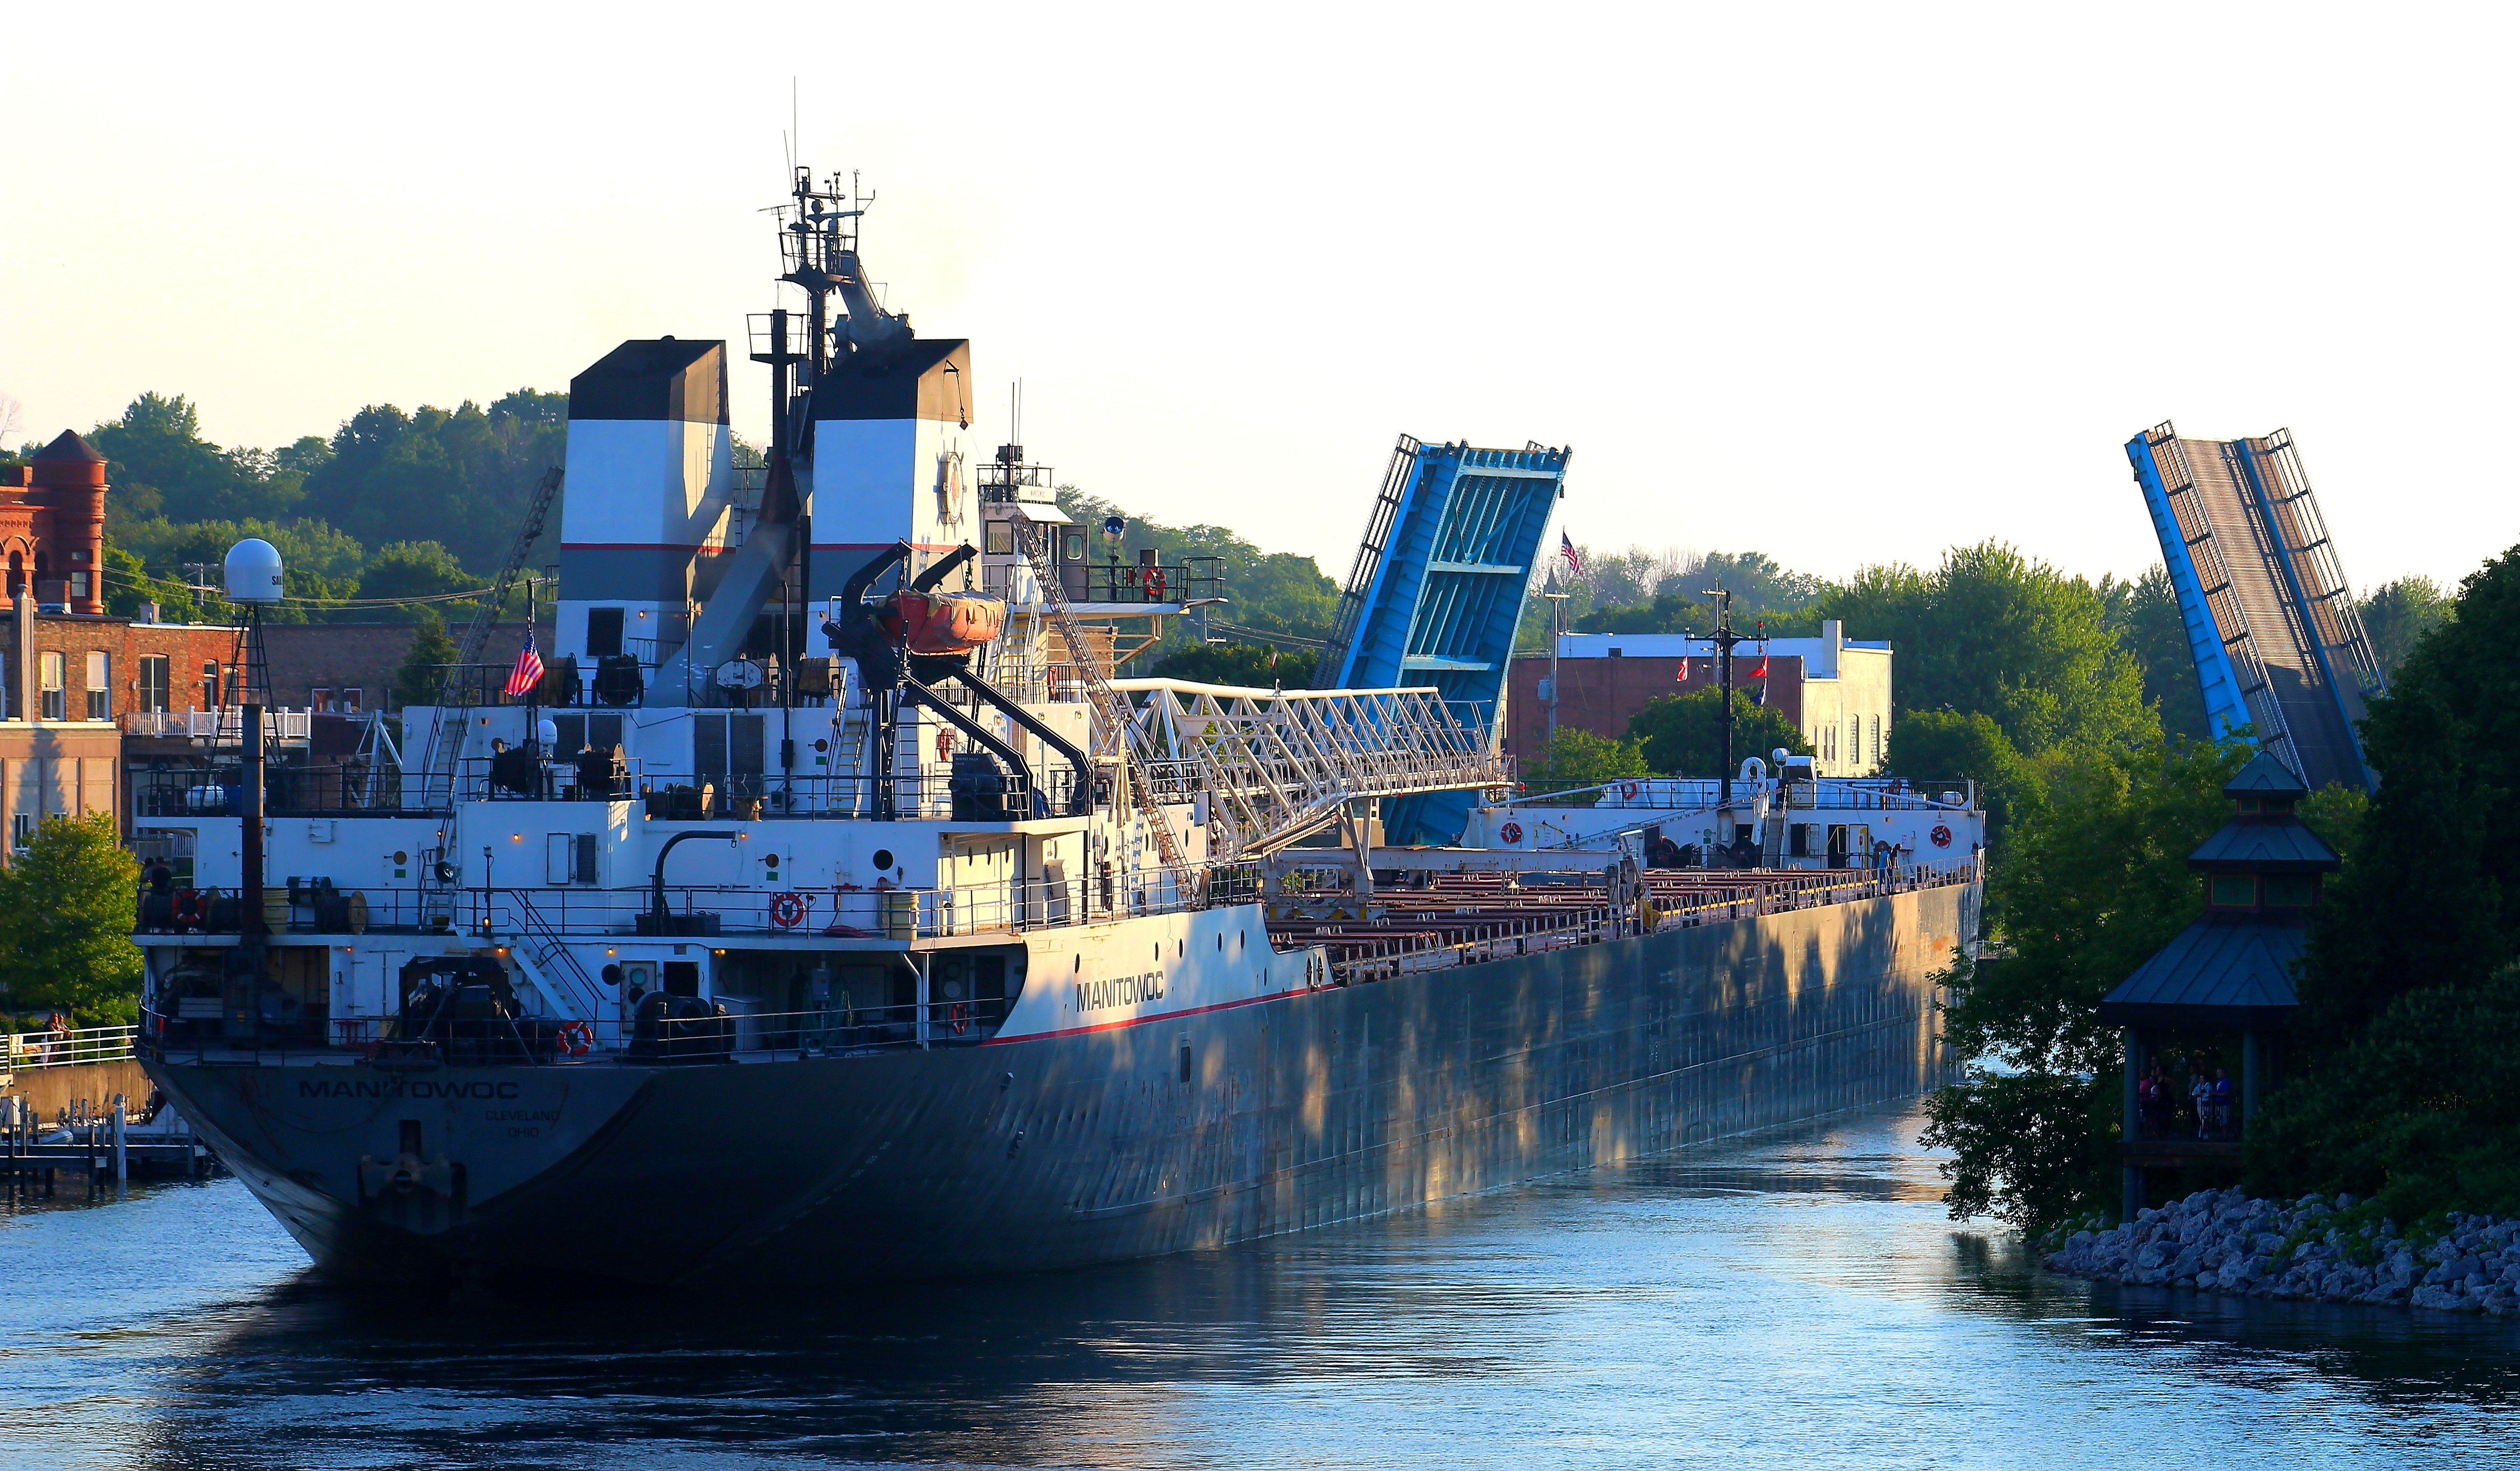 Great Lakes Freighter Manitowoc going through Maple Street Bridge on a sunny day